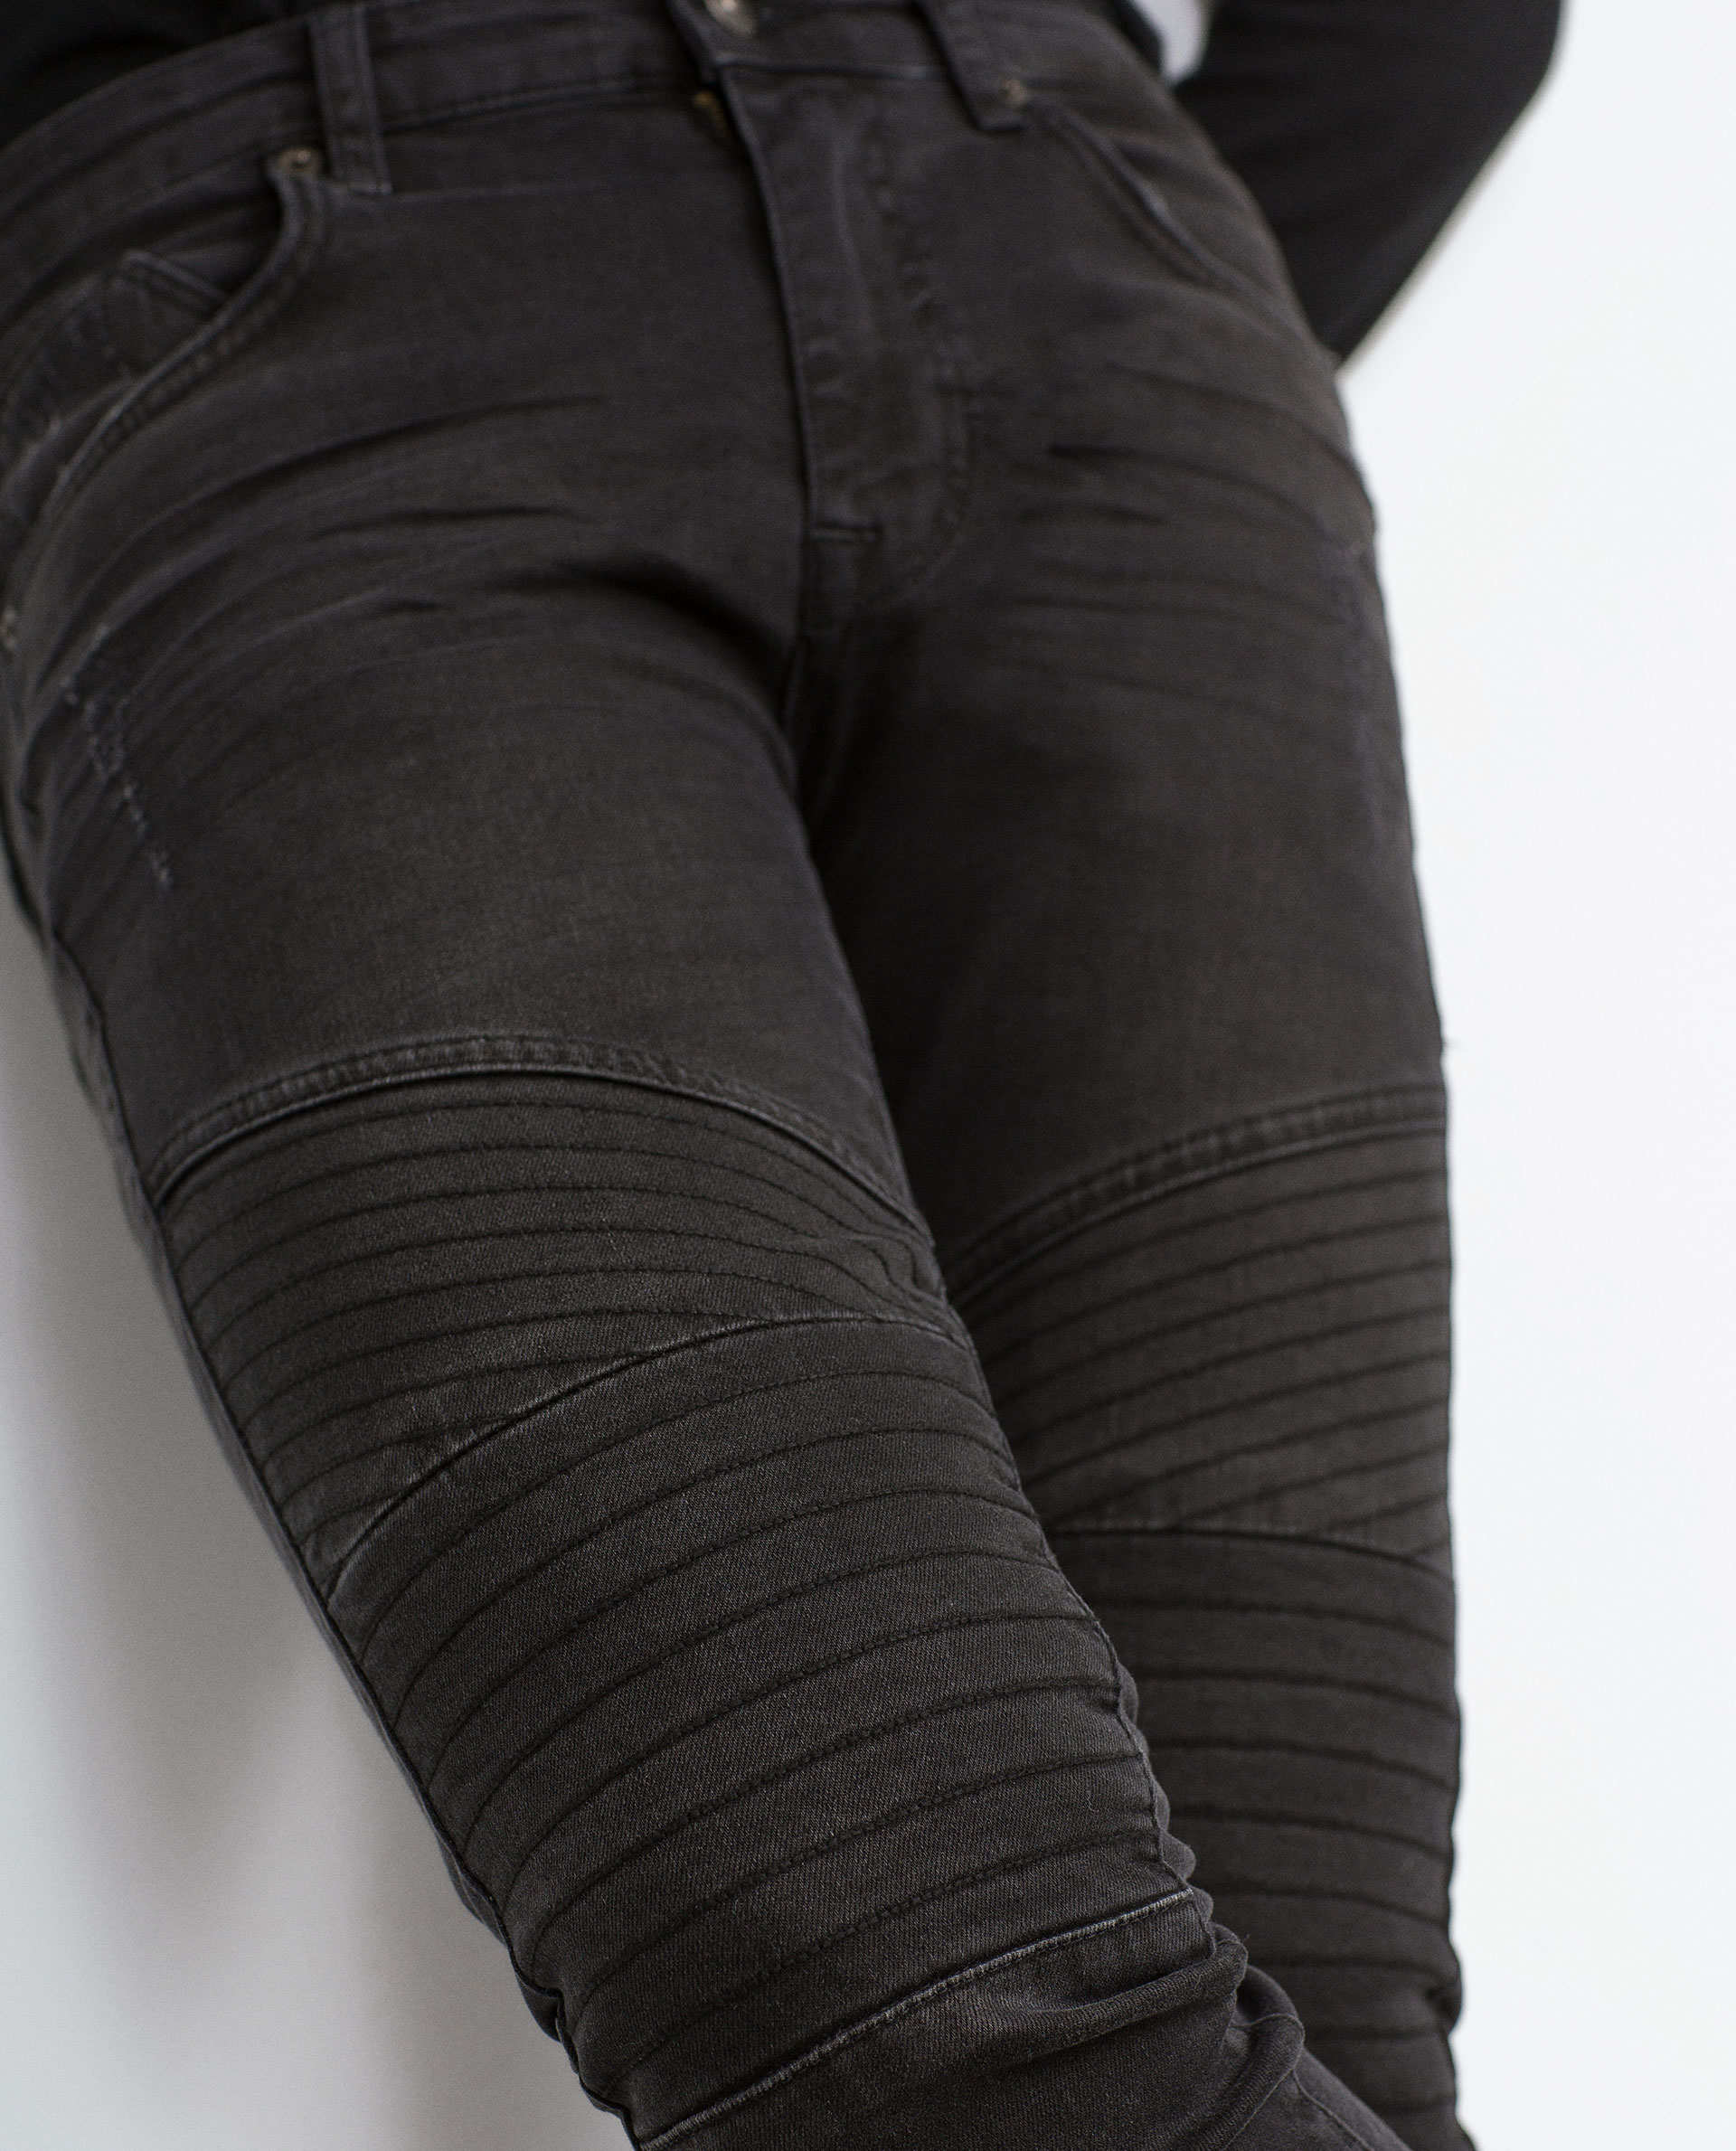 Waxed Jeans For Men